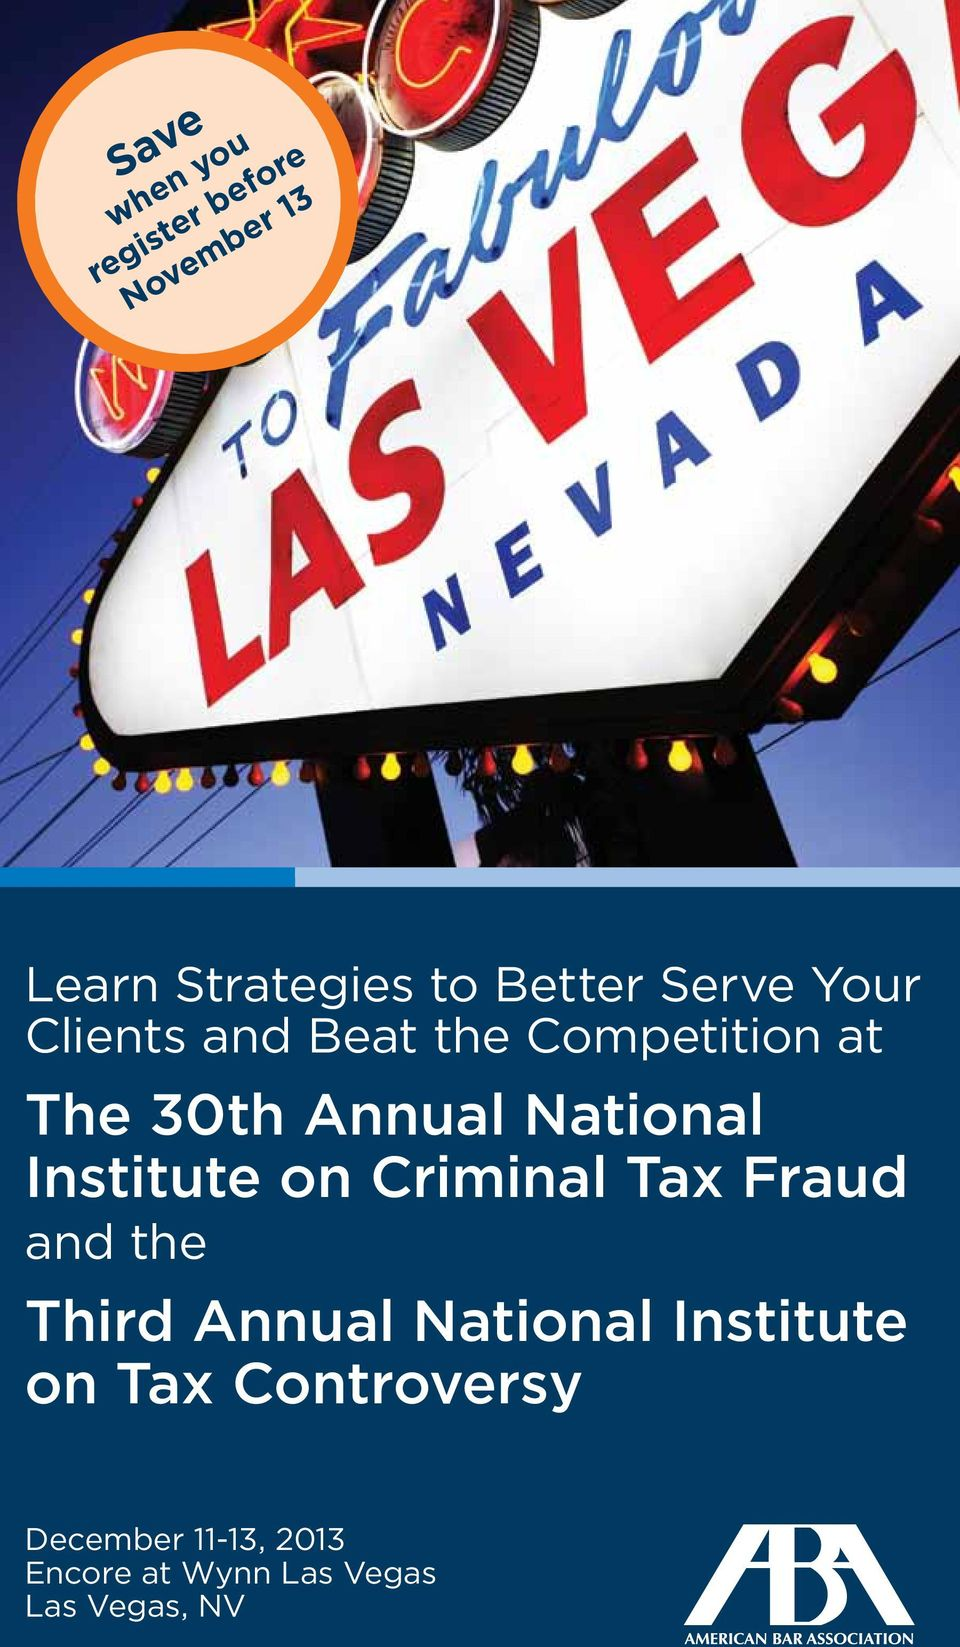 Institute on Criminal Tax Fraud and the Third Annual National Institute